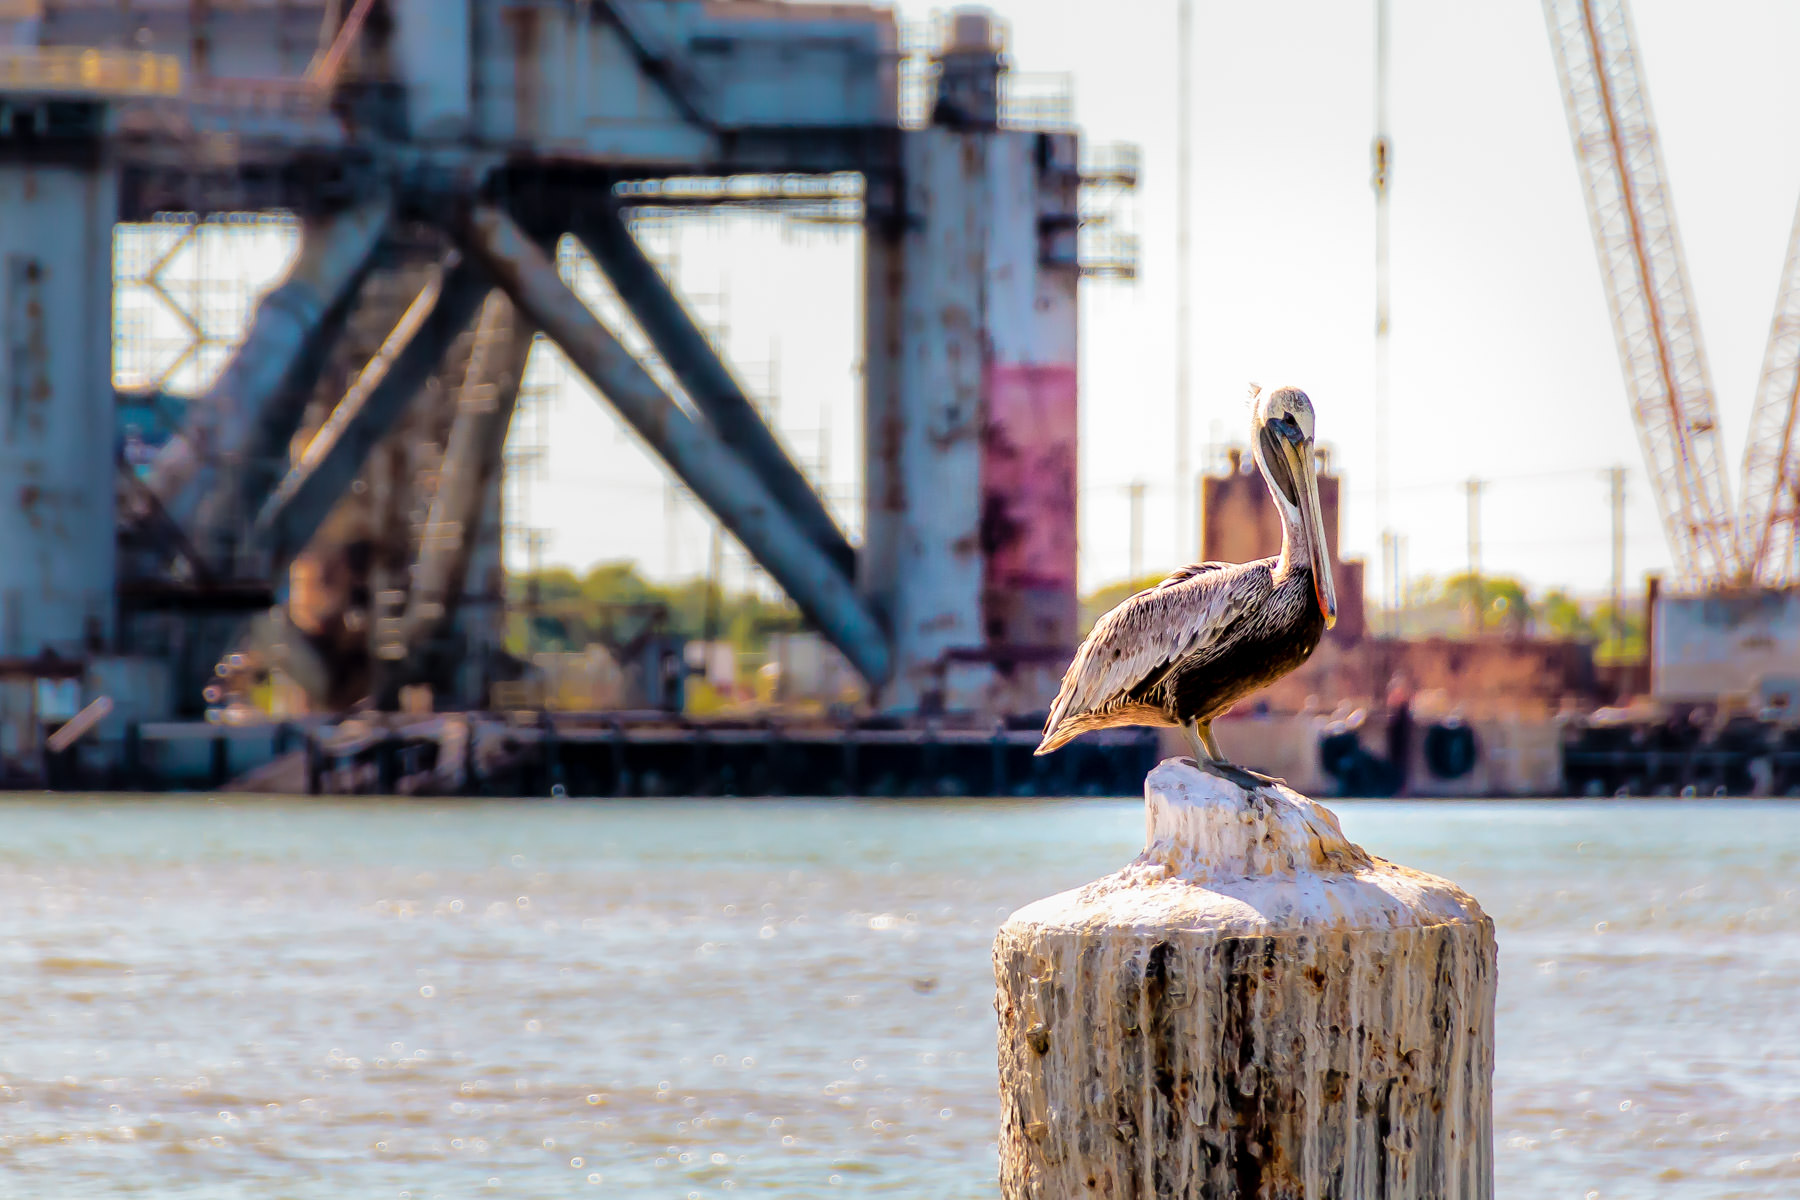 A pelican alights on a piling in Galveston Harbor as an oil platform in a dry dock looms behind him.